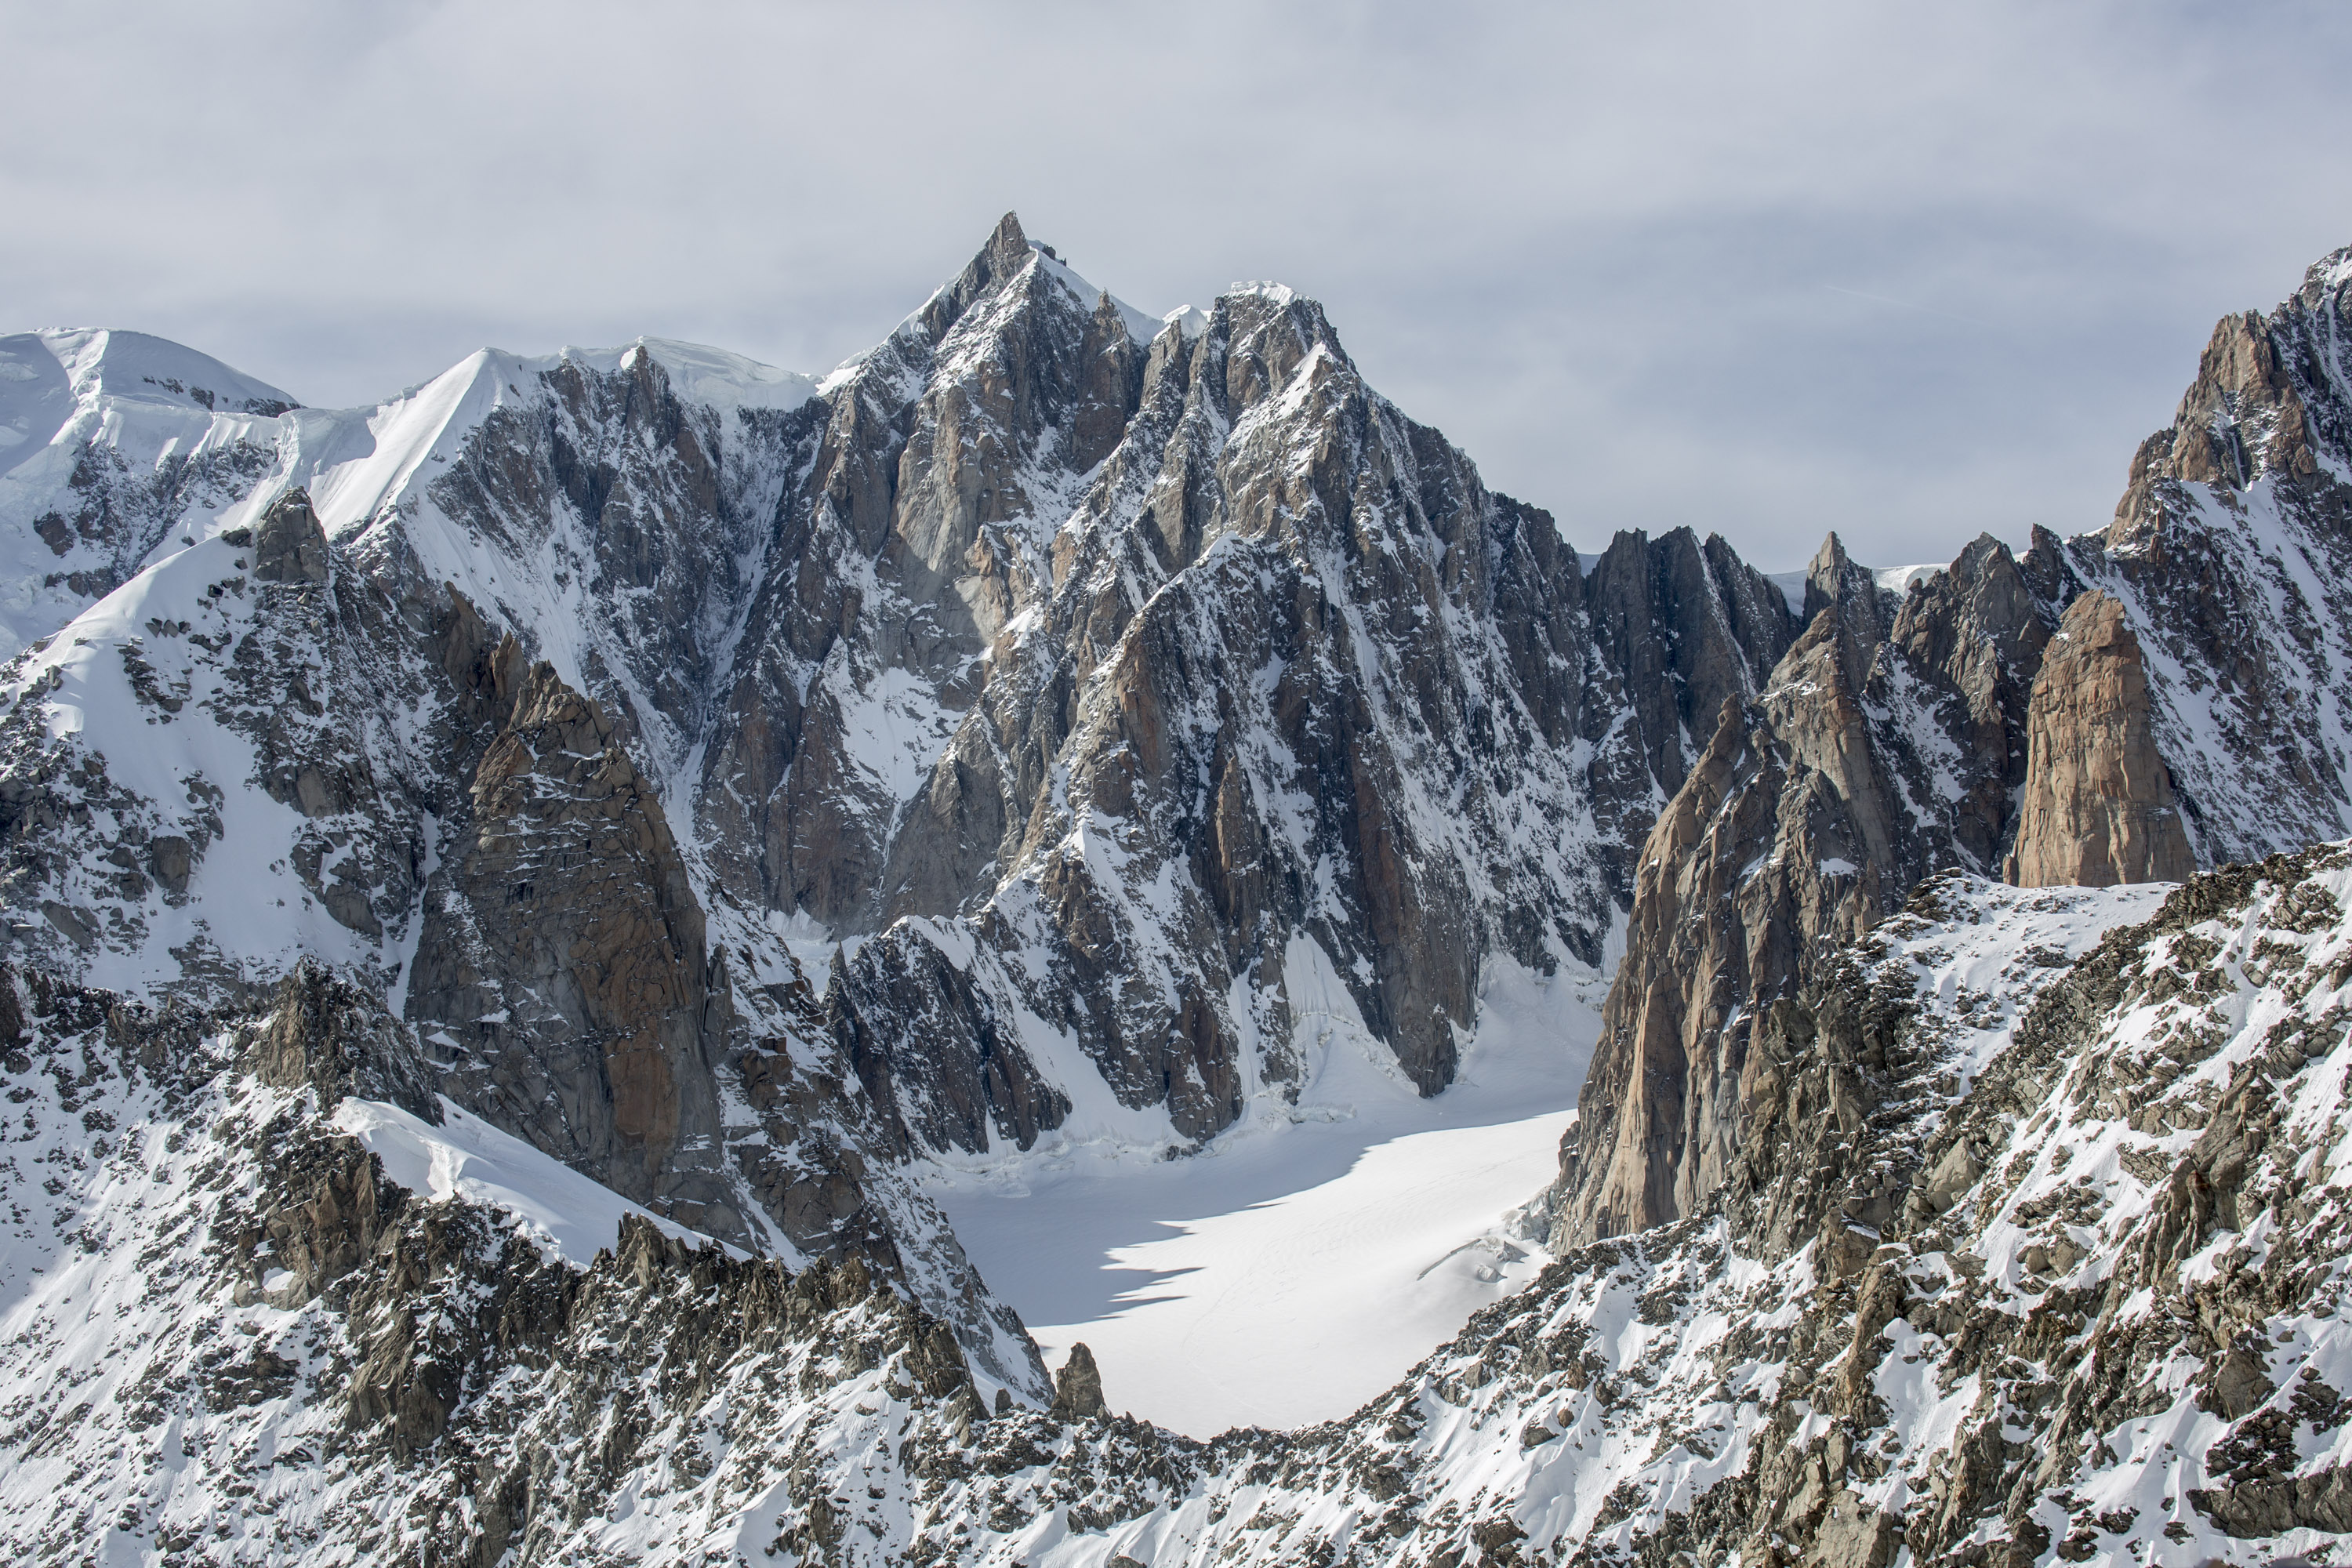 Mont Maudit and the Frontier Ridge taken from the Italian side of Mt Blanc. Canon 5D MkIII, Canon EF 17-40mm f/4L USM Lens at 70mm, ISO 100, 1/250 sec at f/10. Handheld. October. © Stuart Holmes